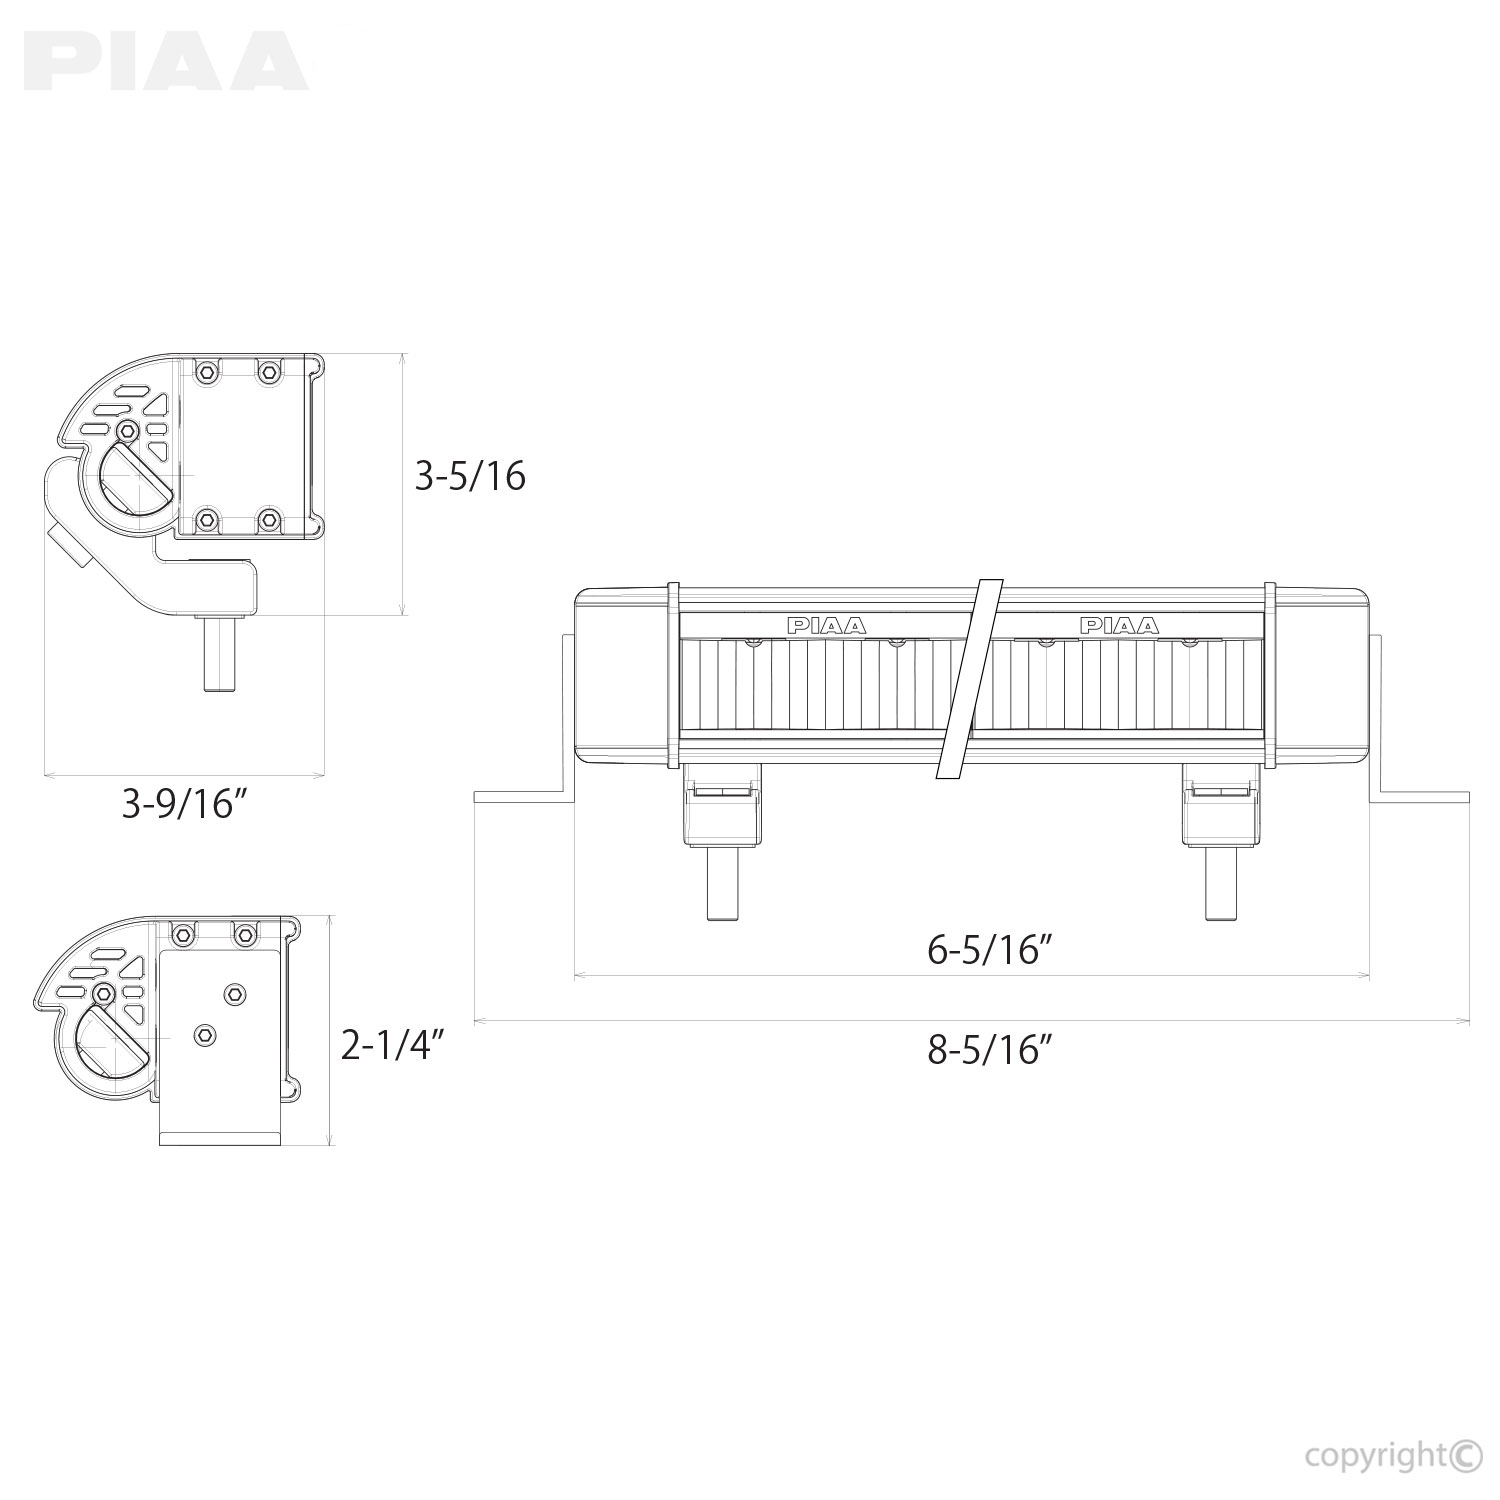 Piaa 510 Wiring Harness Diagram Solutions 1100 Lamp Led Drl Electrical Work